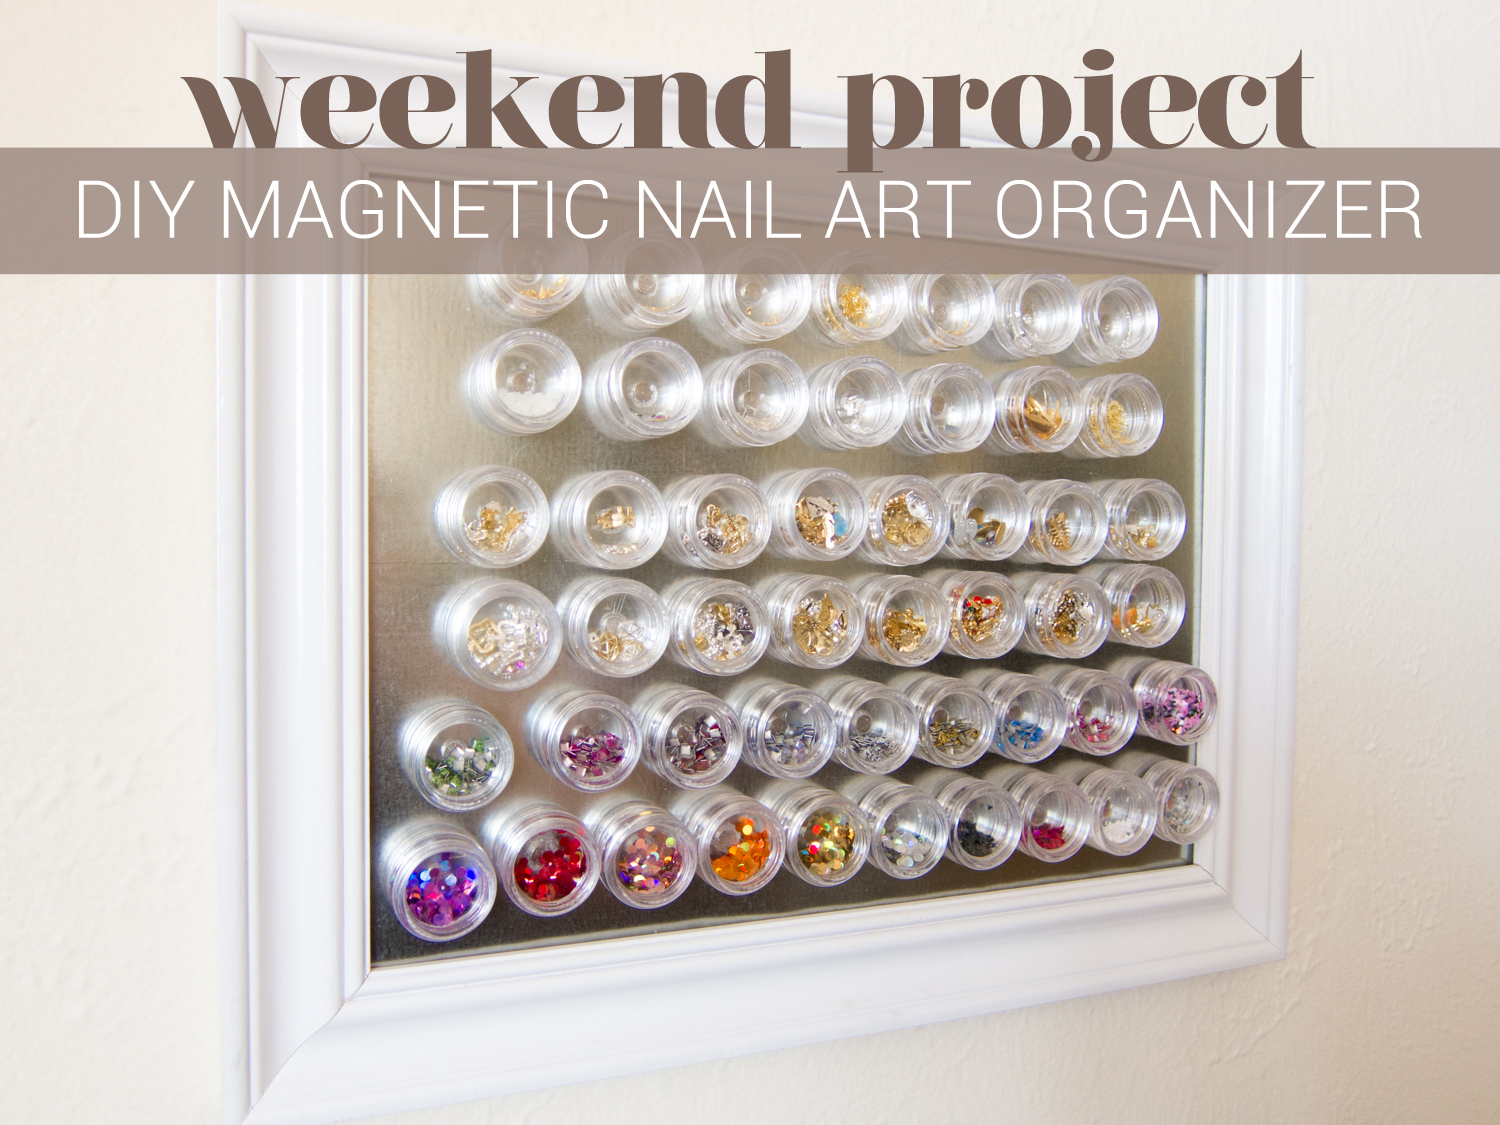 DIY Magnetic Nail Art Organizer Tutorial by @chalkboardnails